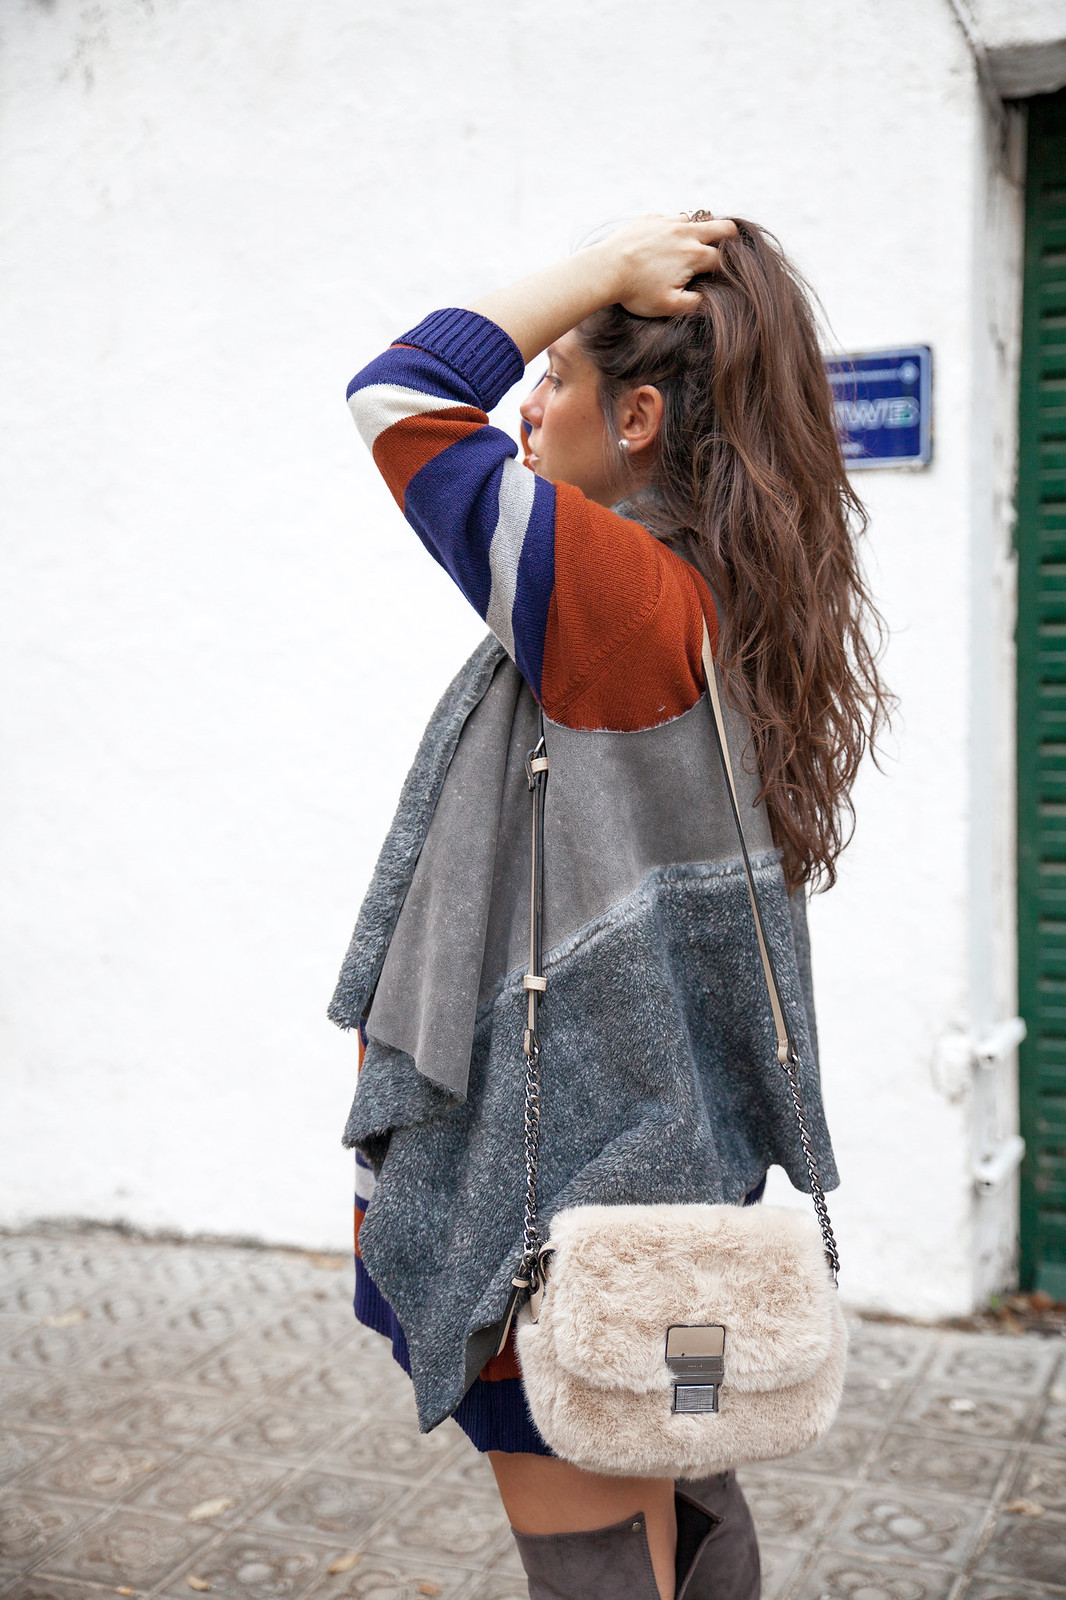 06_Vestido_rayas_punto_chaleco_look_embarazo_tercer_trimestre_theguestgirl_fashion_influencer_fashion_portugal_brand_ruga